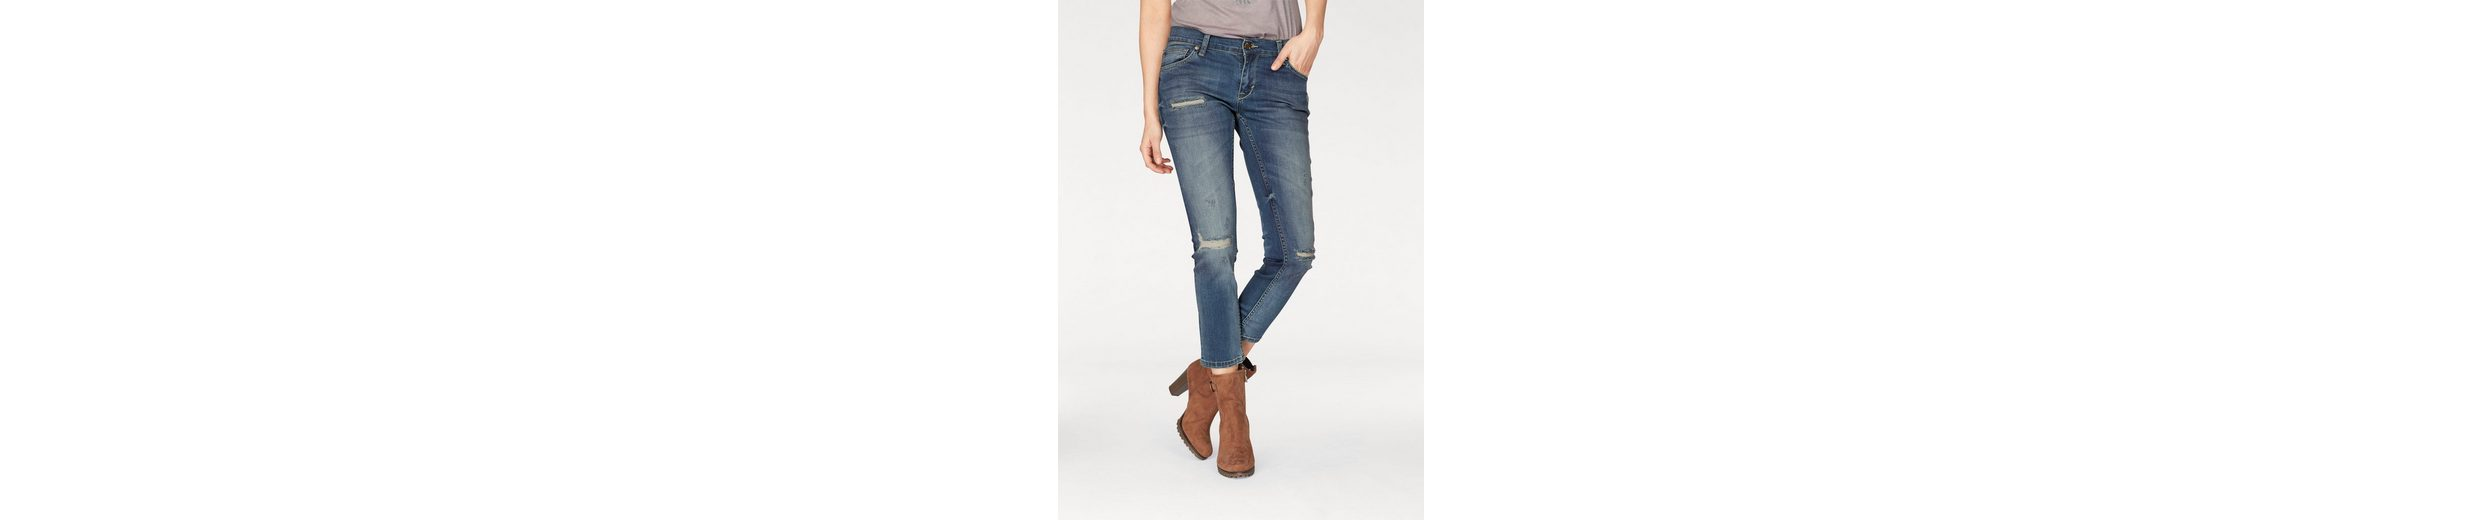 Zhrill Ankle-Jeans ANITA, mit Destroyed-Effekten